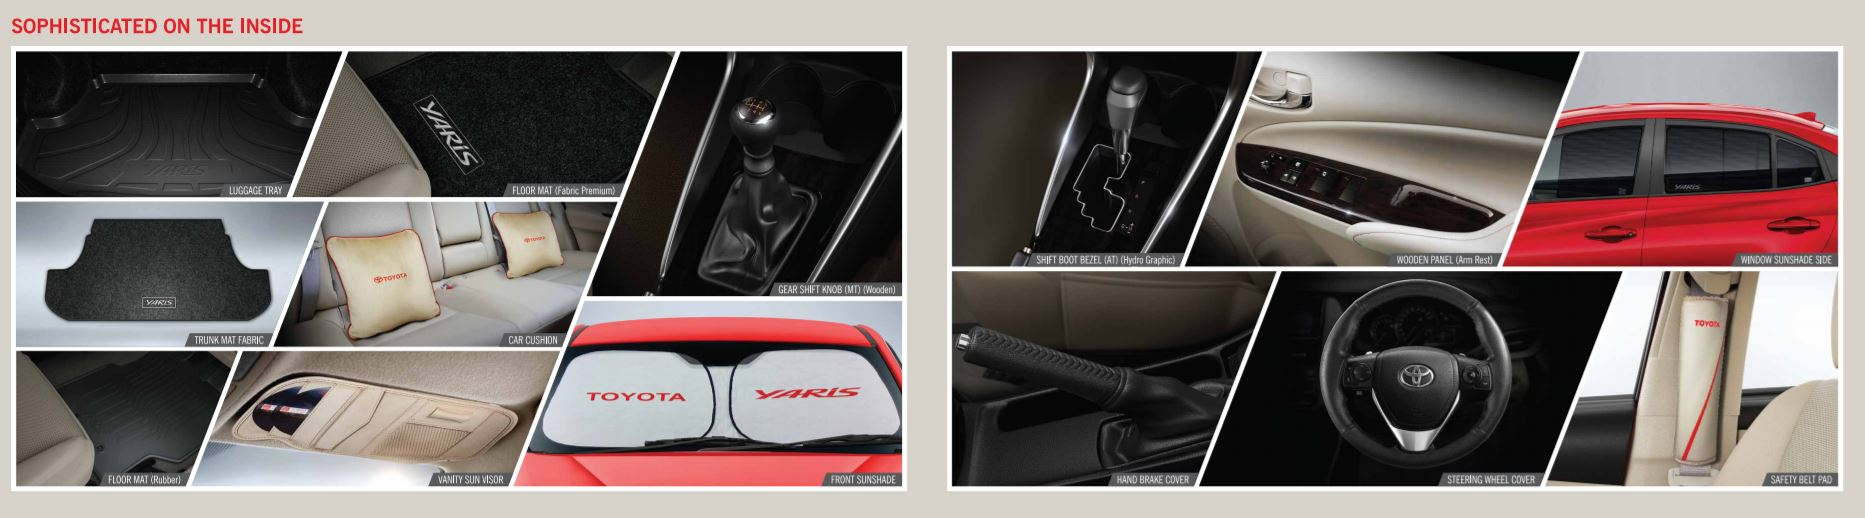 Toyota yaris accessories brochure revealed officially - Toyota yaris interior accessories ...